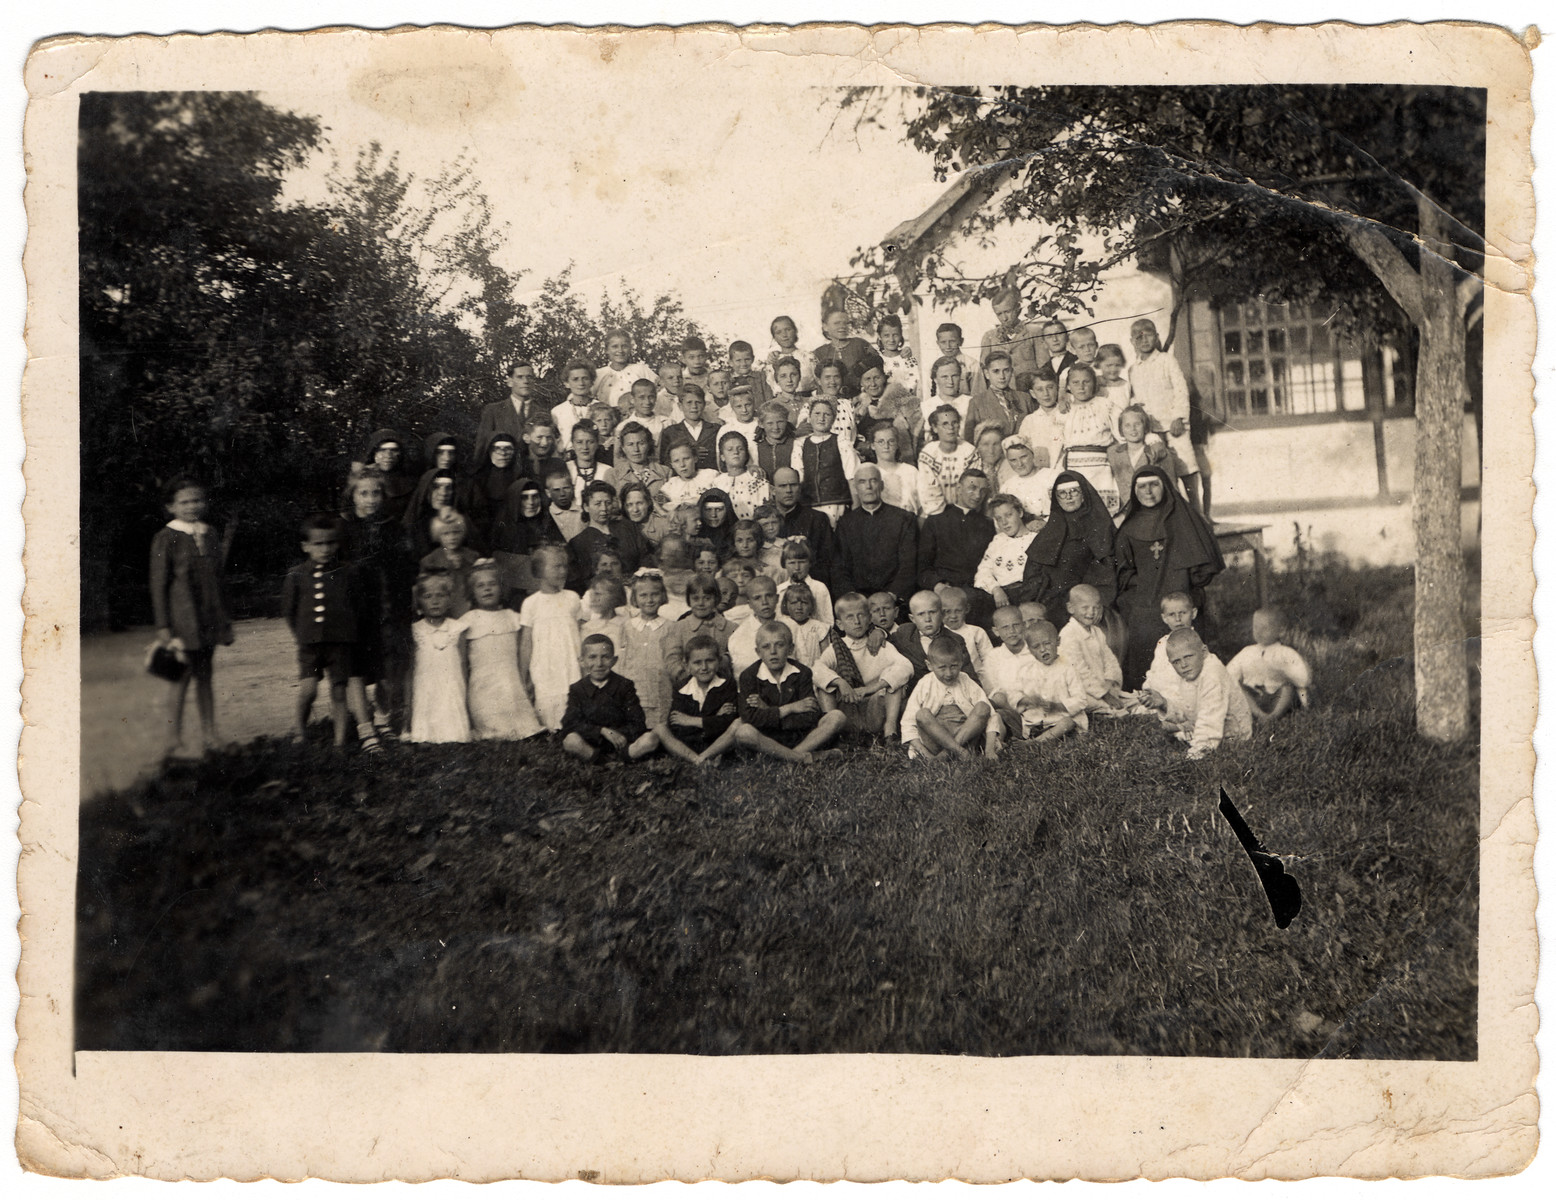 Group portrait of children in a monastery on the outskirsts of Lvov.    Among them were Jewish children in hiding including Hanna later Lewkowicz.